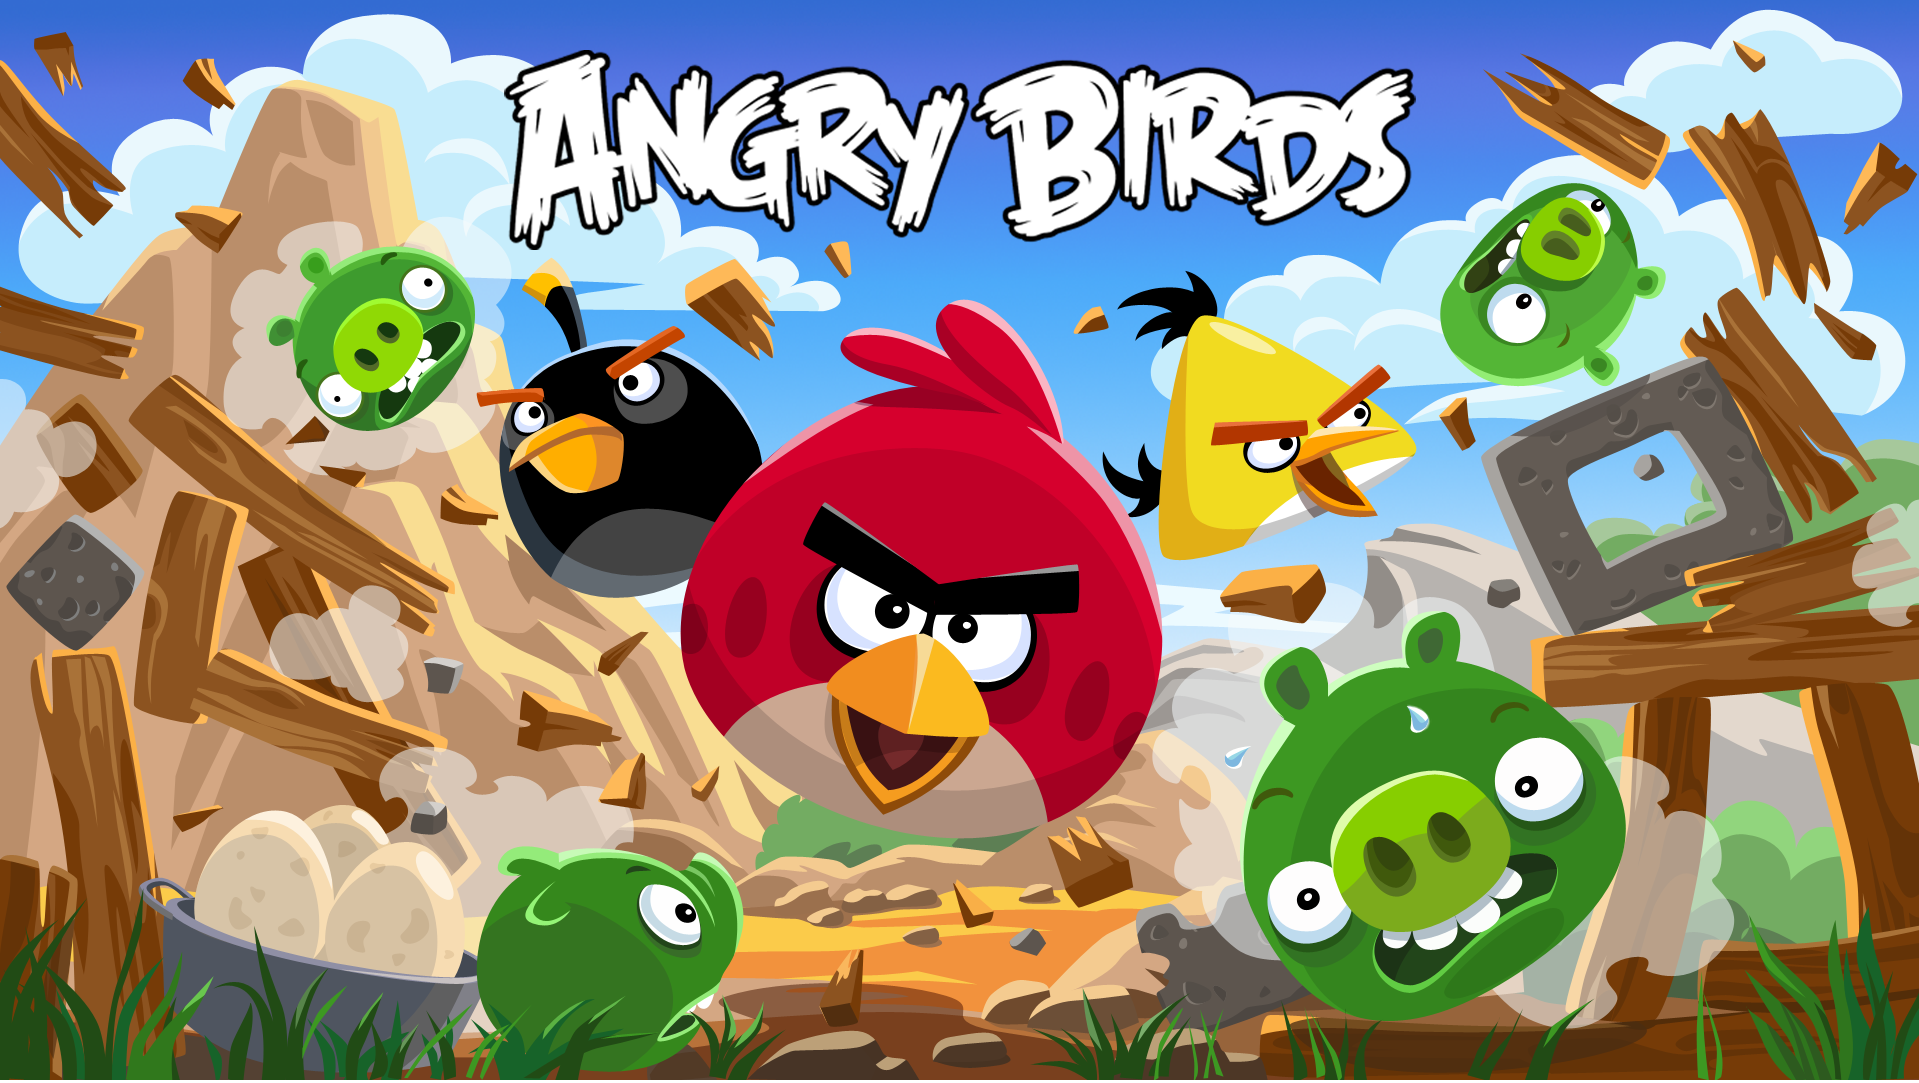 Los Angry Birds llegarn al cine en 2016.